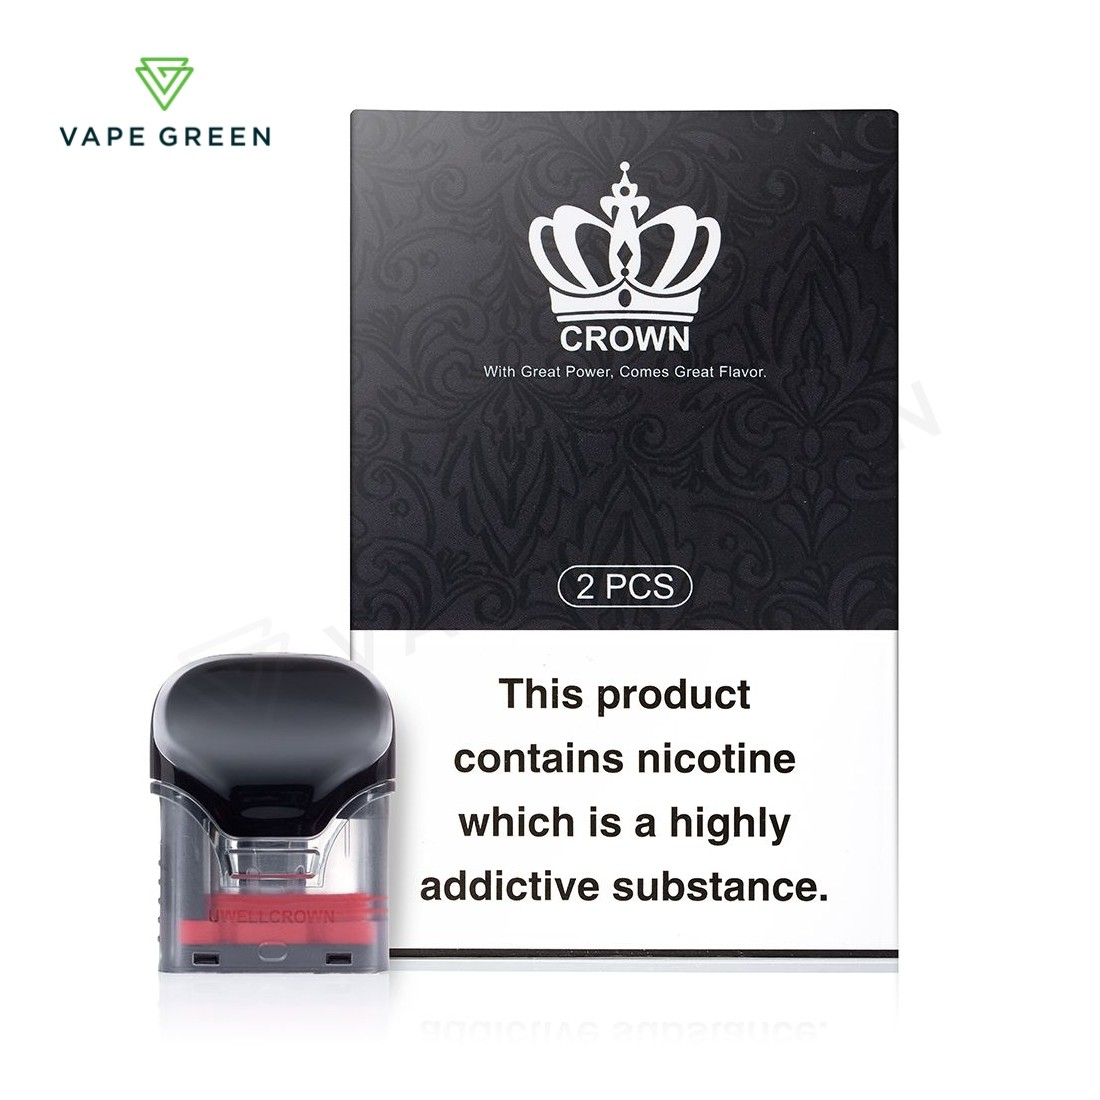 Uwell Crown Replacement Pods - 2 Pack